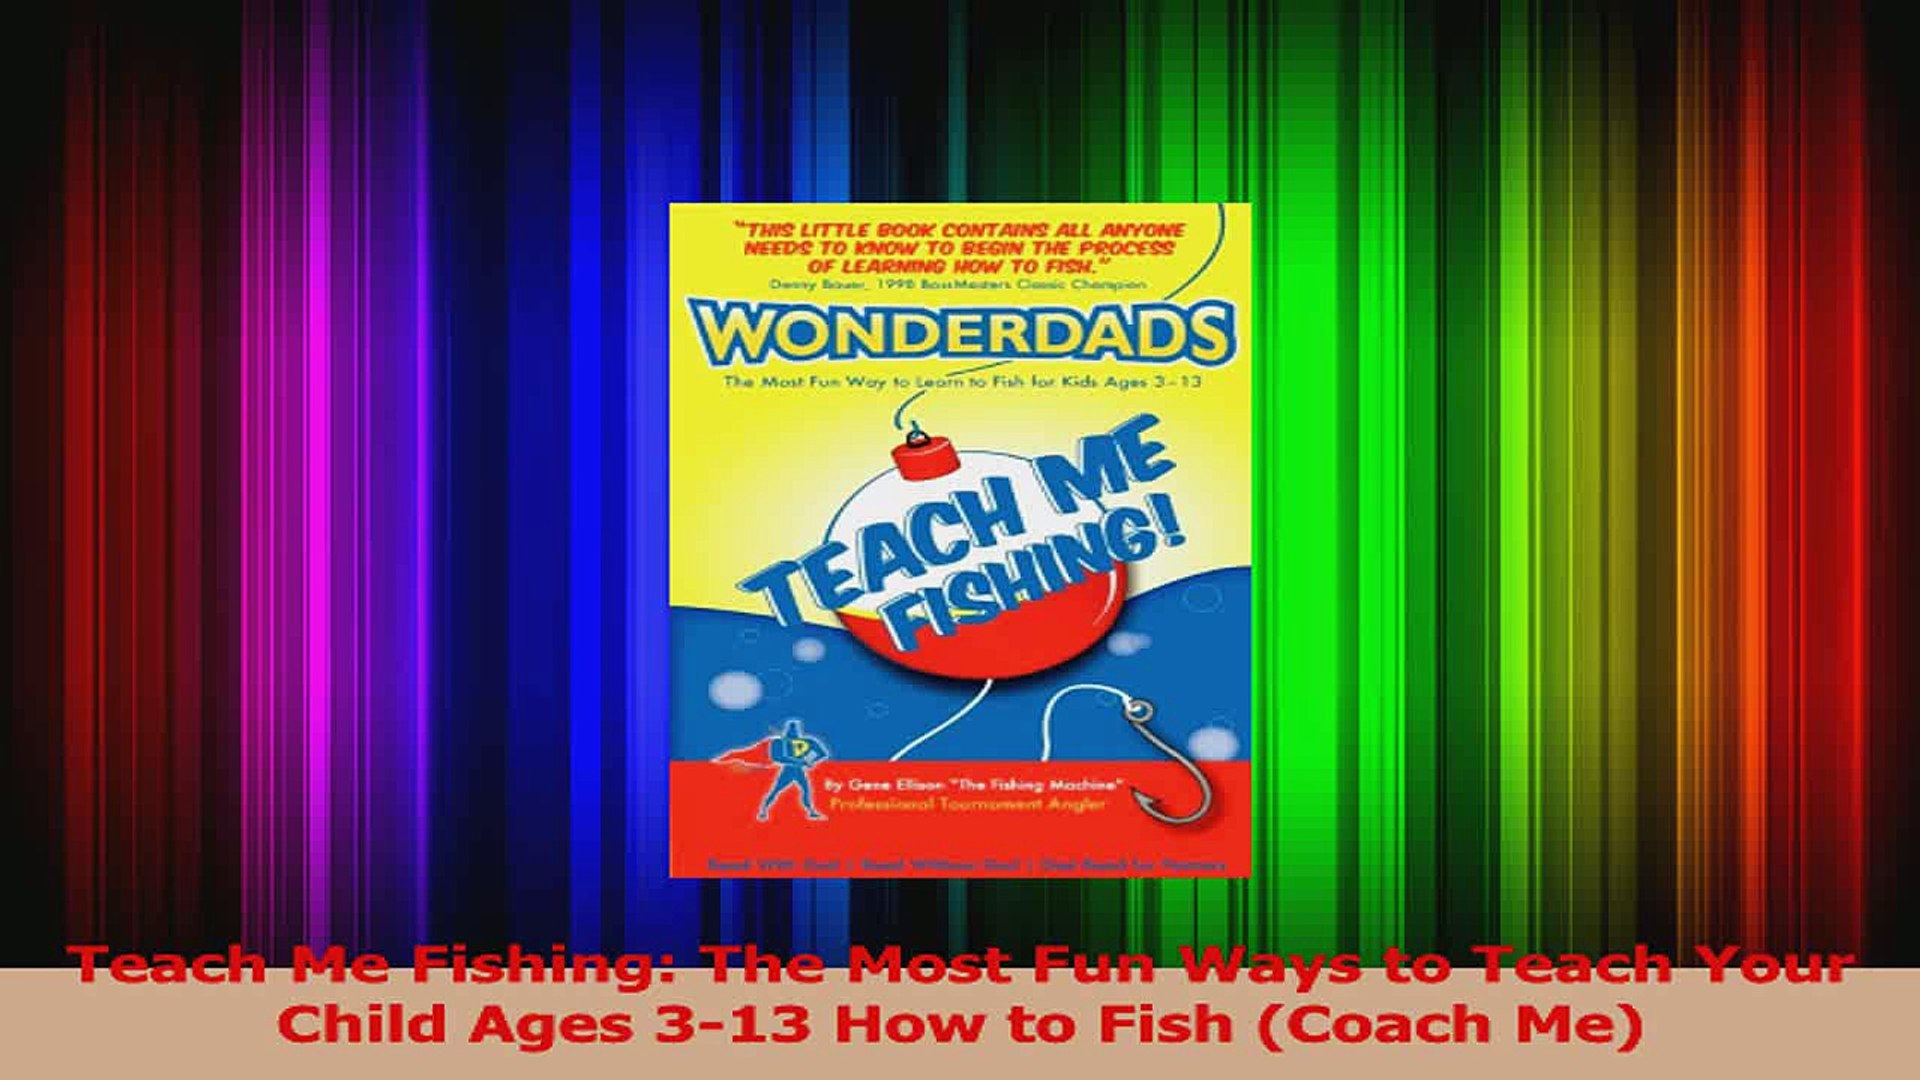 Teach Me Fishing The Most Fun Ways to Teach Your Child Ages 313 How to Fish Coach Me Download